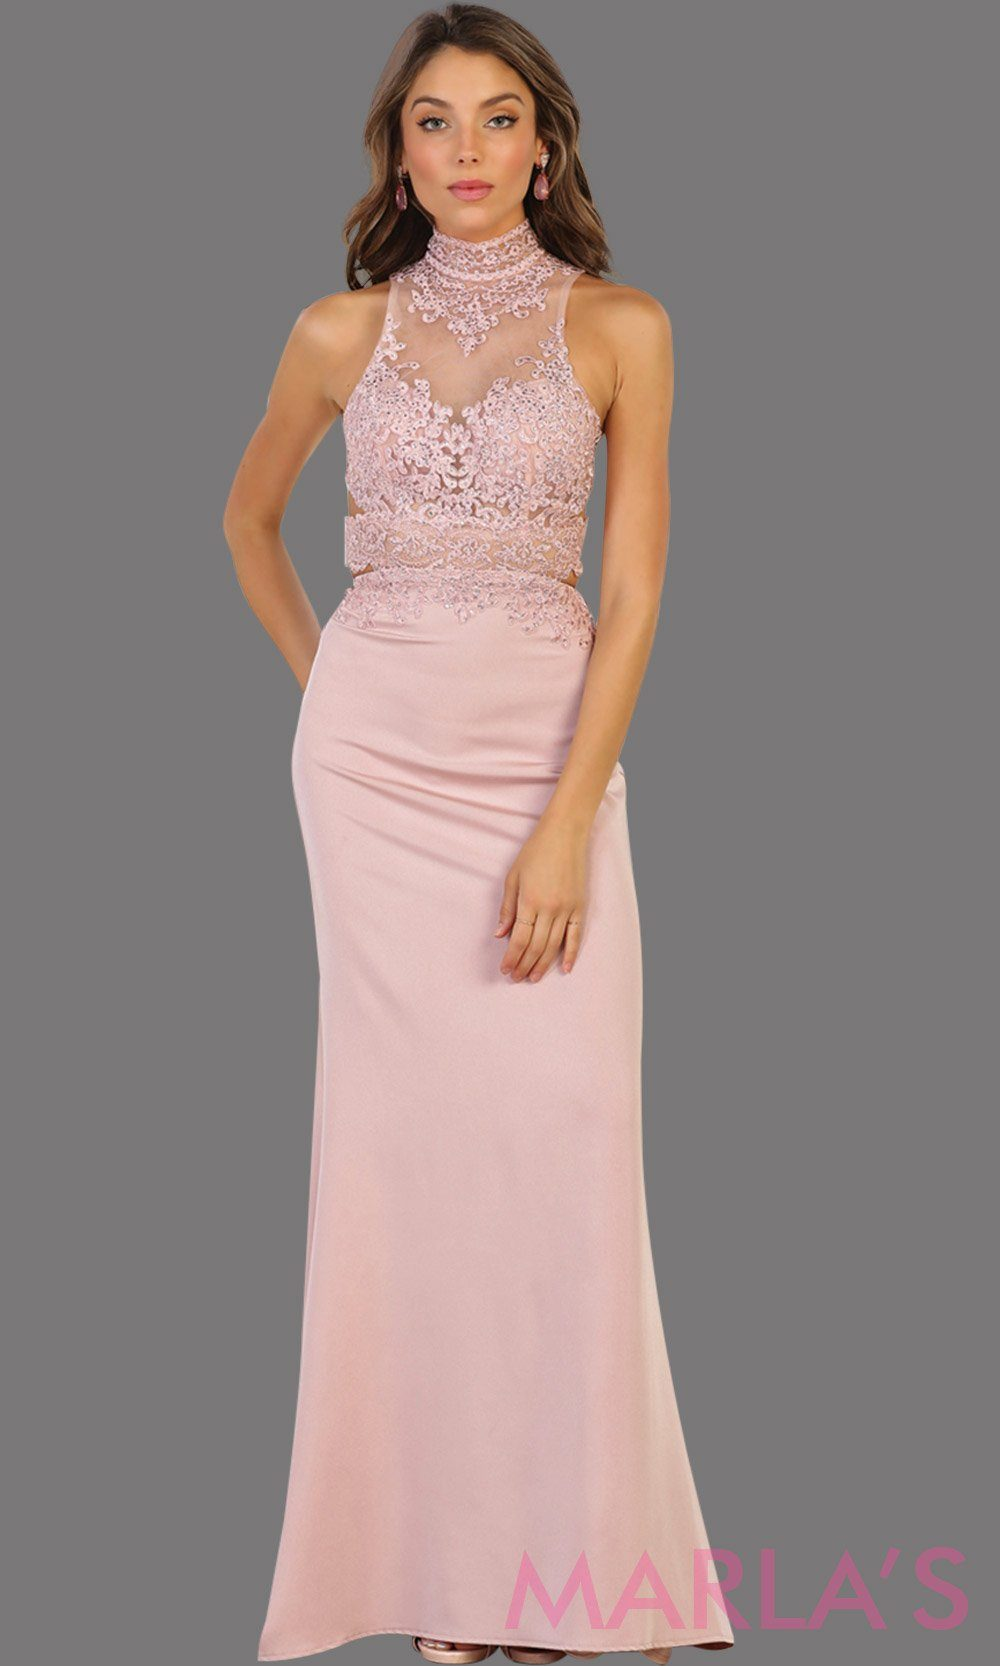 Long dusty rose open back fitted dress. This low back pink gown is perfect for prom, formal gala, formal wedding, reception, engagement dress. Features high neck with illusion waist, neckline, low back.